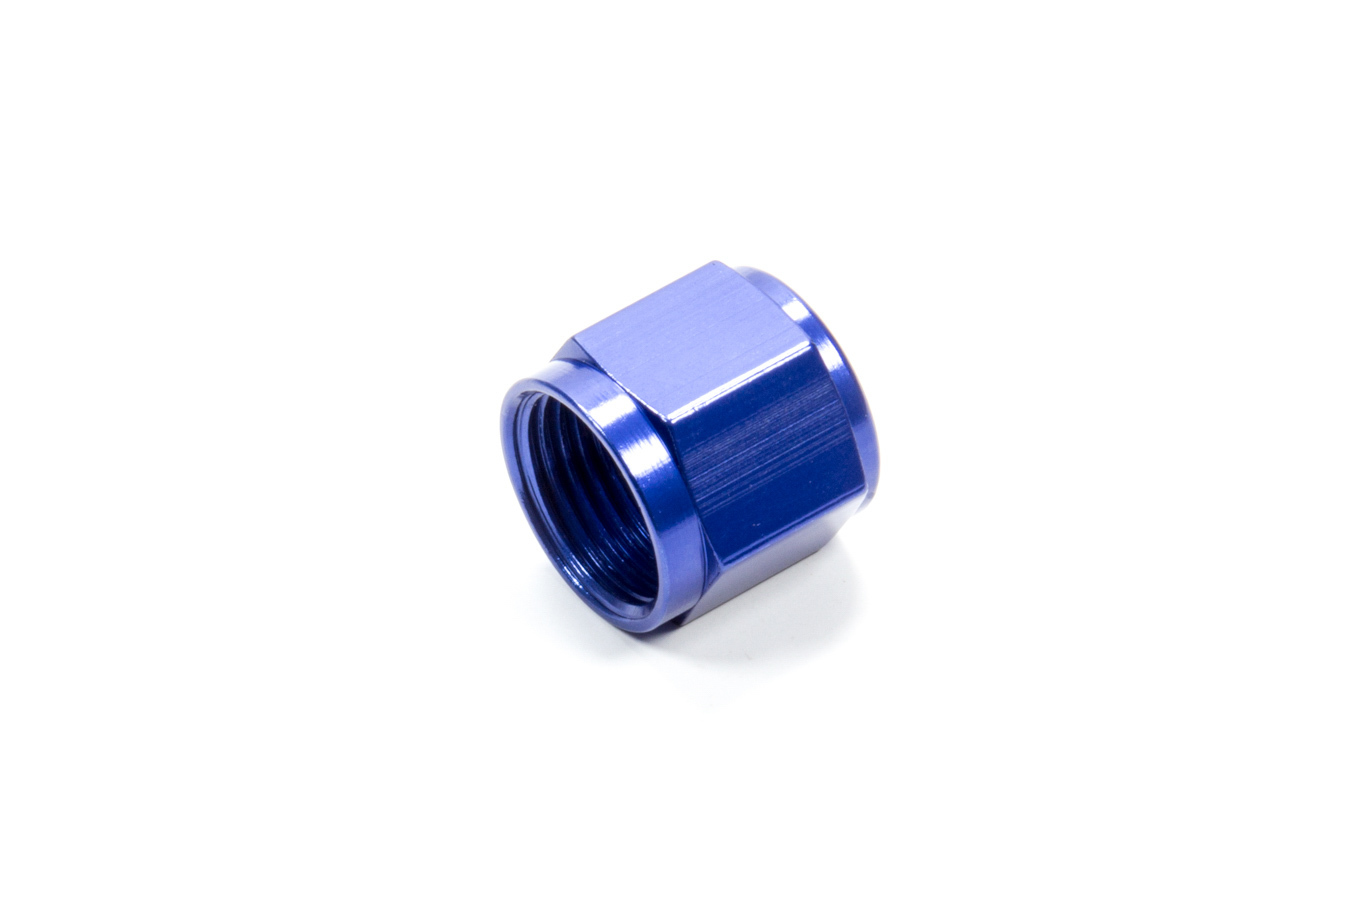 Fragola 492910 Fitting, Cap, 10 AN, Aluminum, Blue Anodize, Each